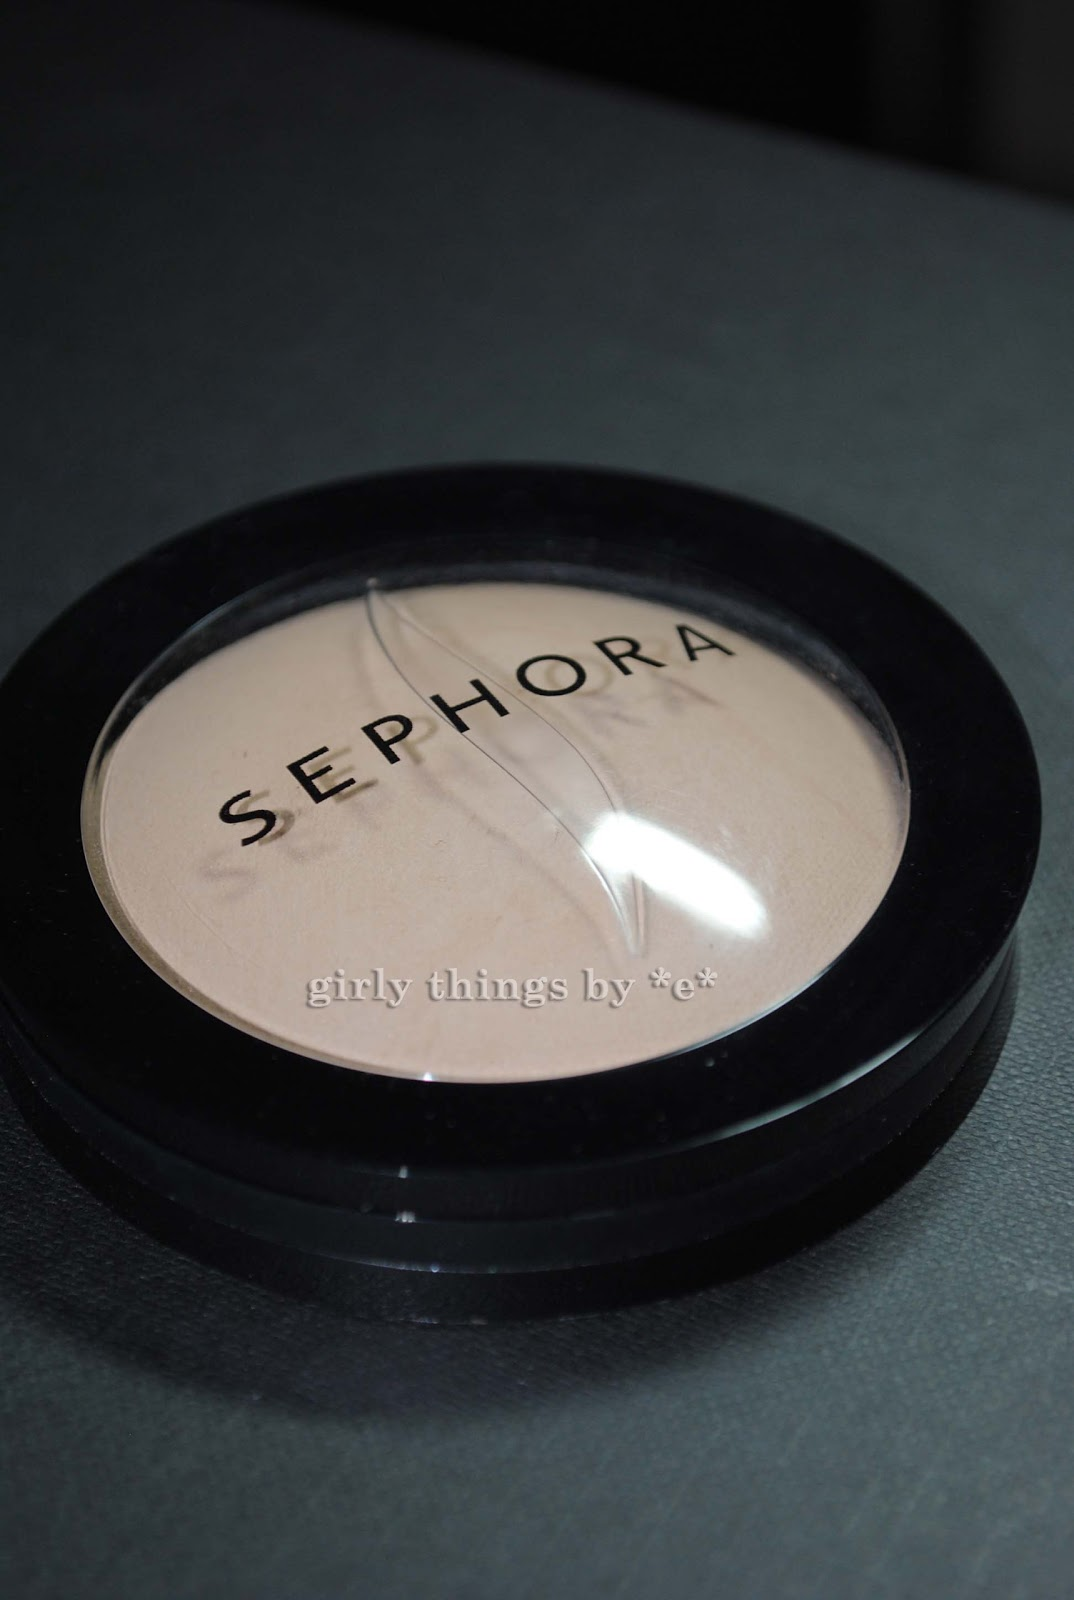 Product Review: Sephora Microsmooth Foundation Powder